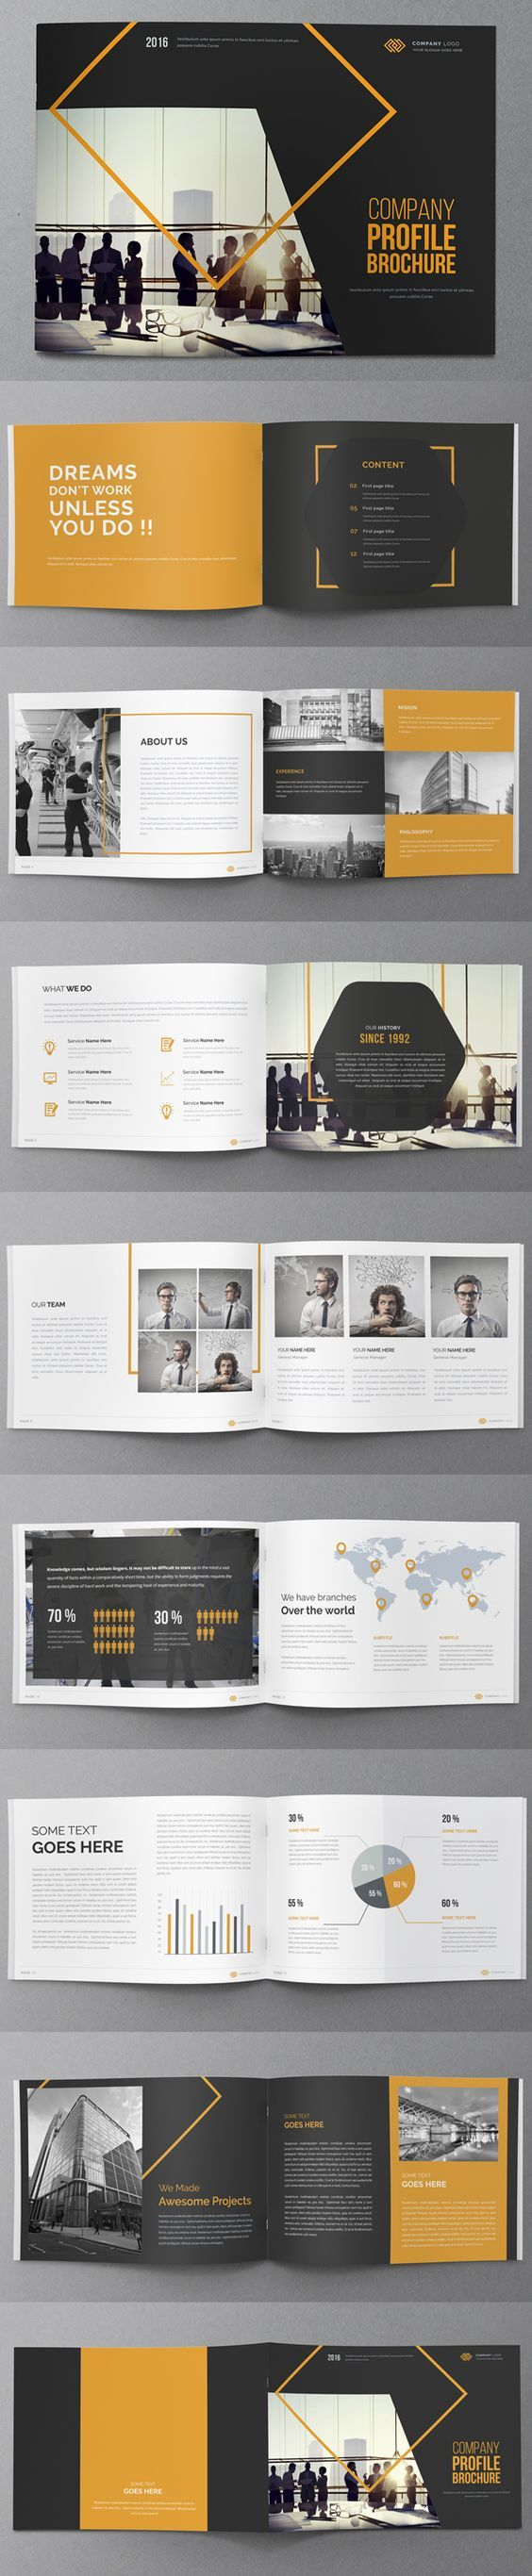 Creative Annual Report Brochure Design                                                                                                                                                      More: